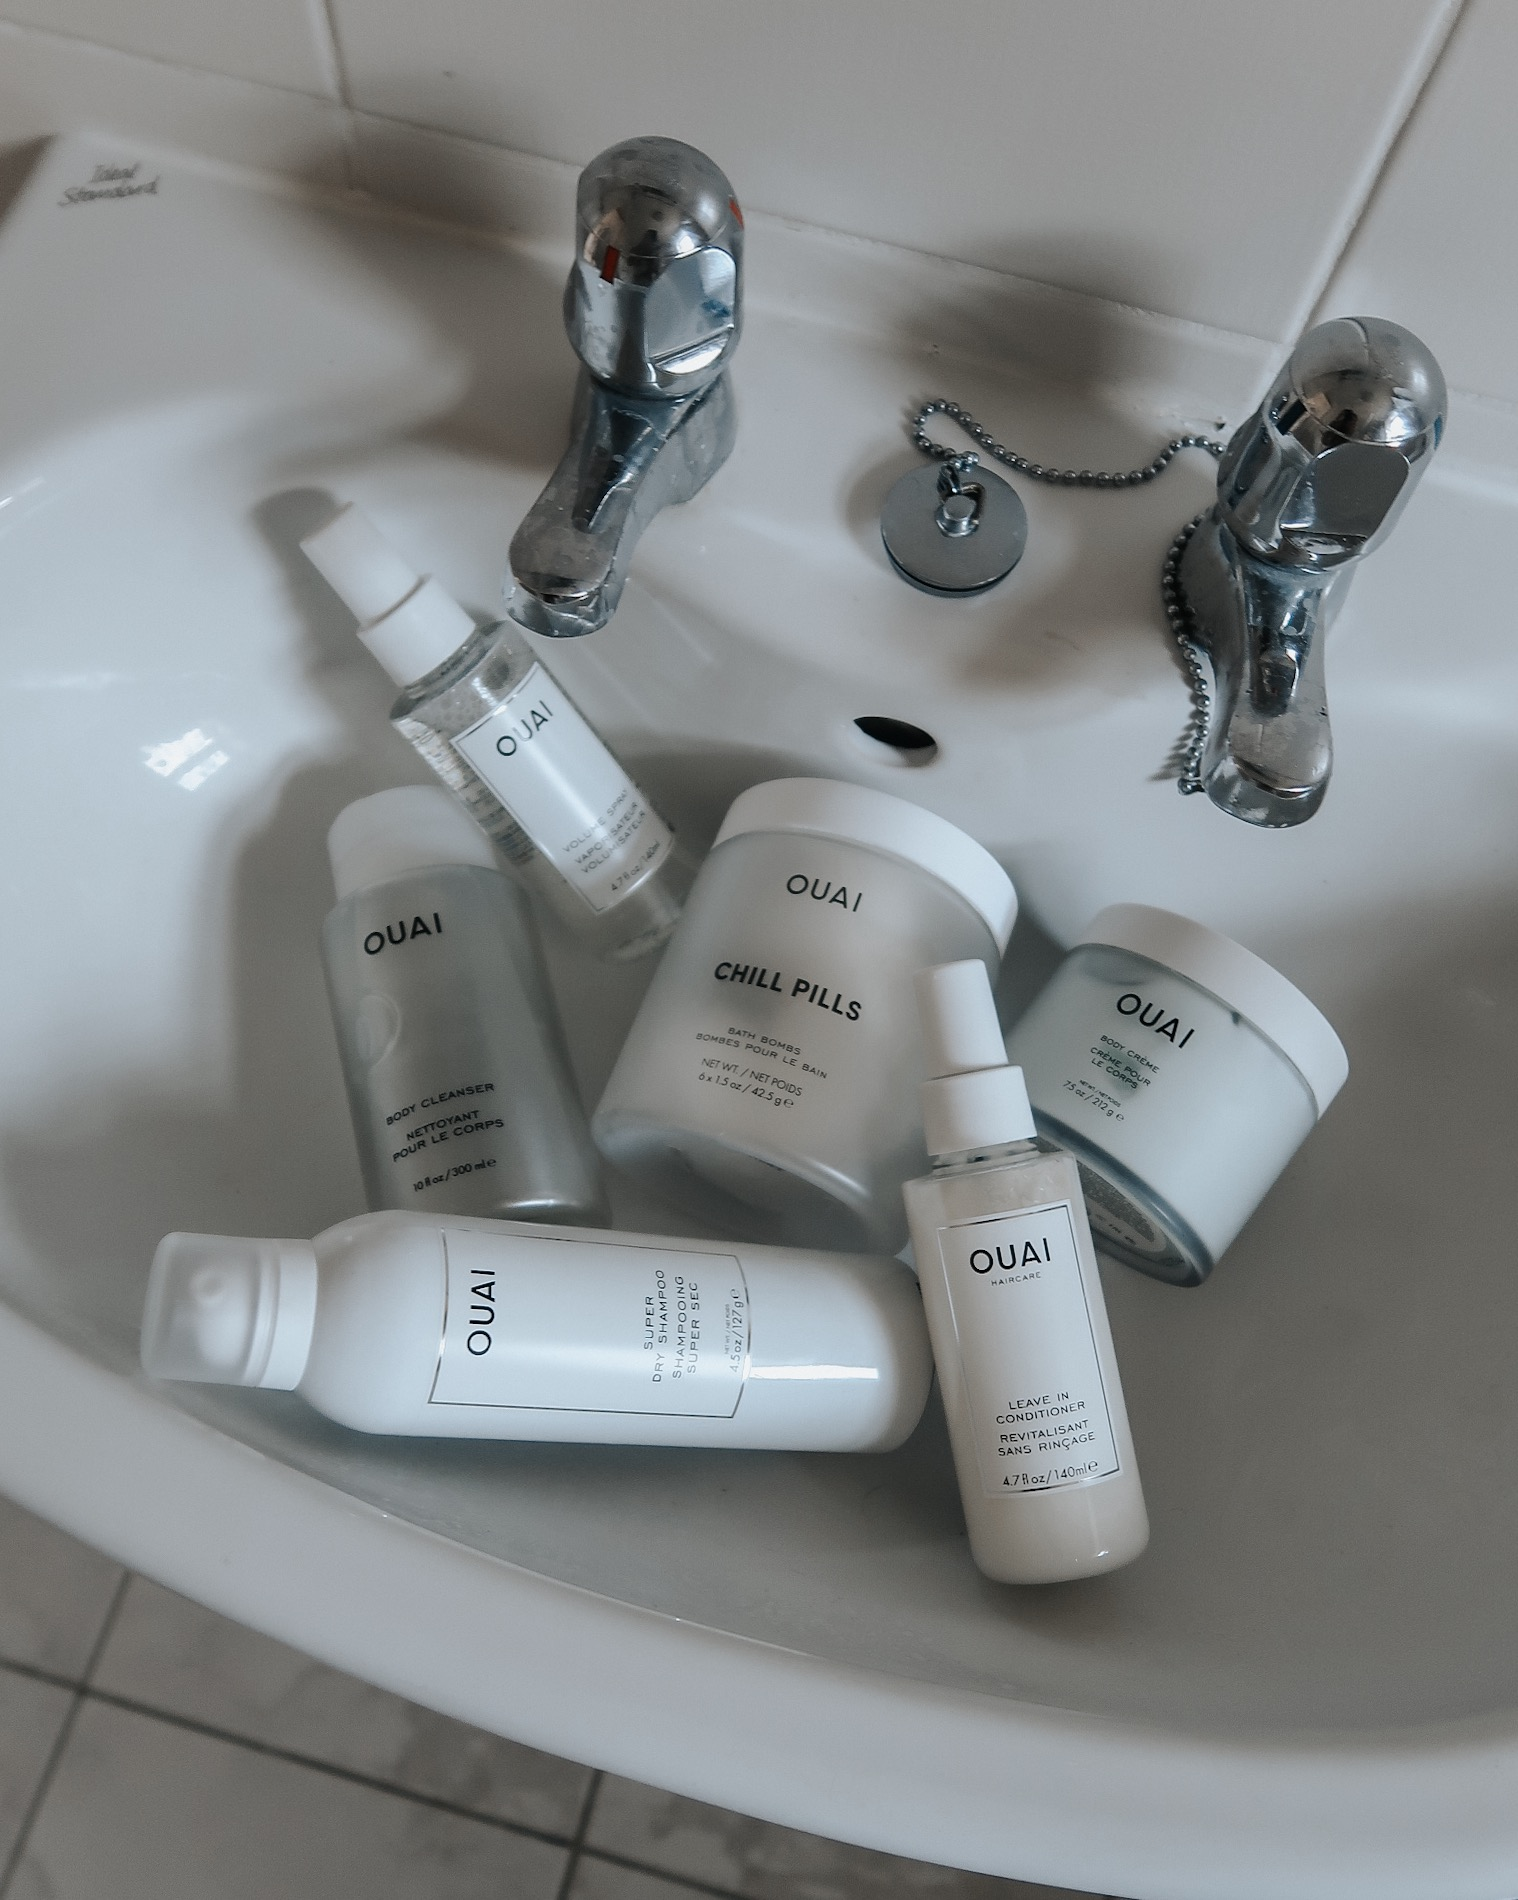 Home Pamper - The Ouai Bodycare Products